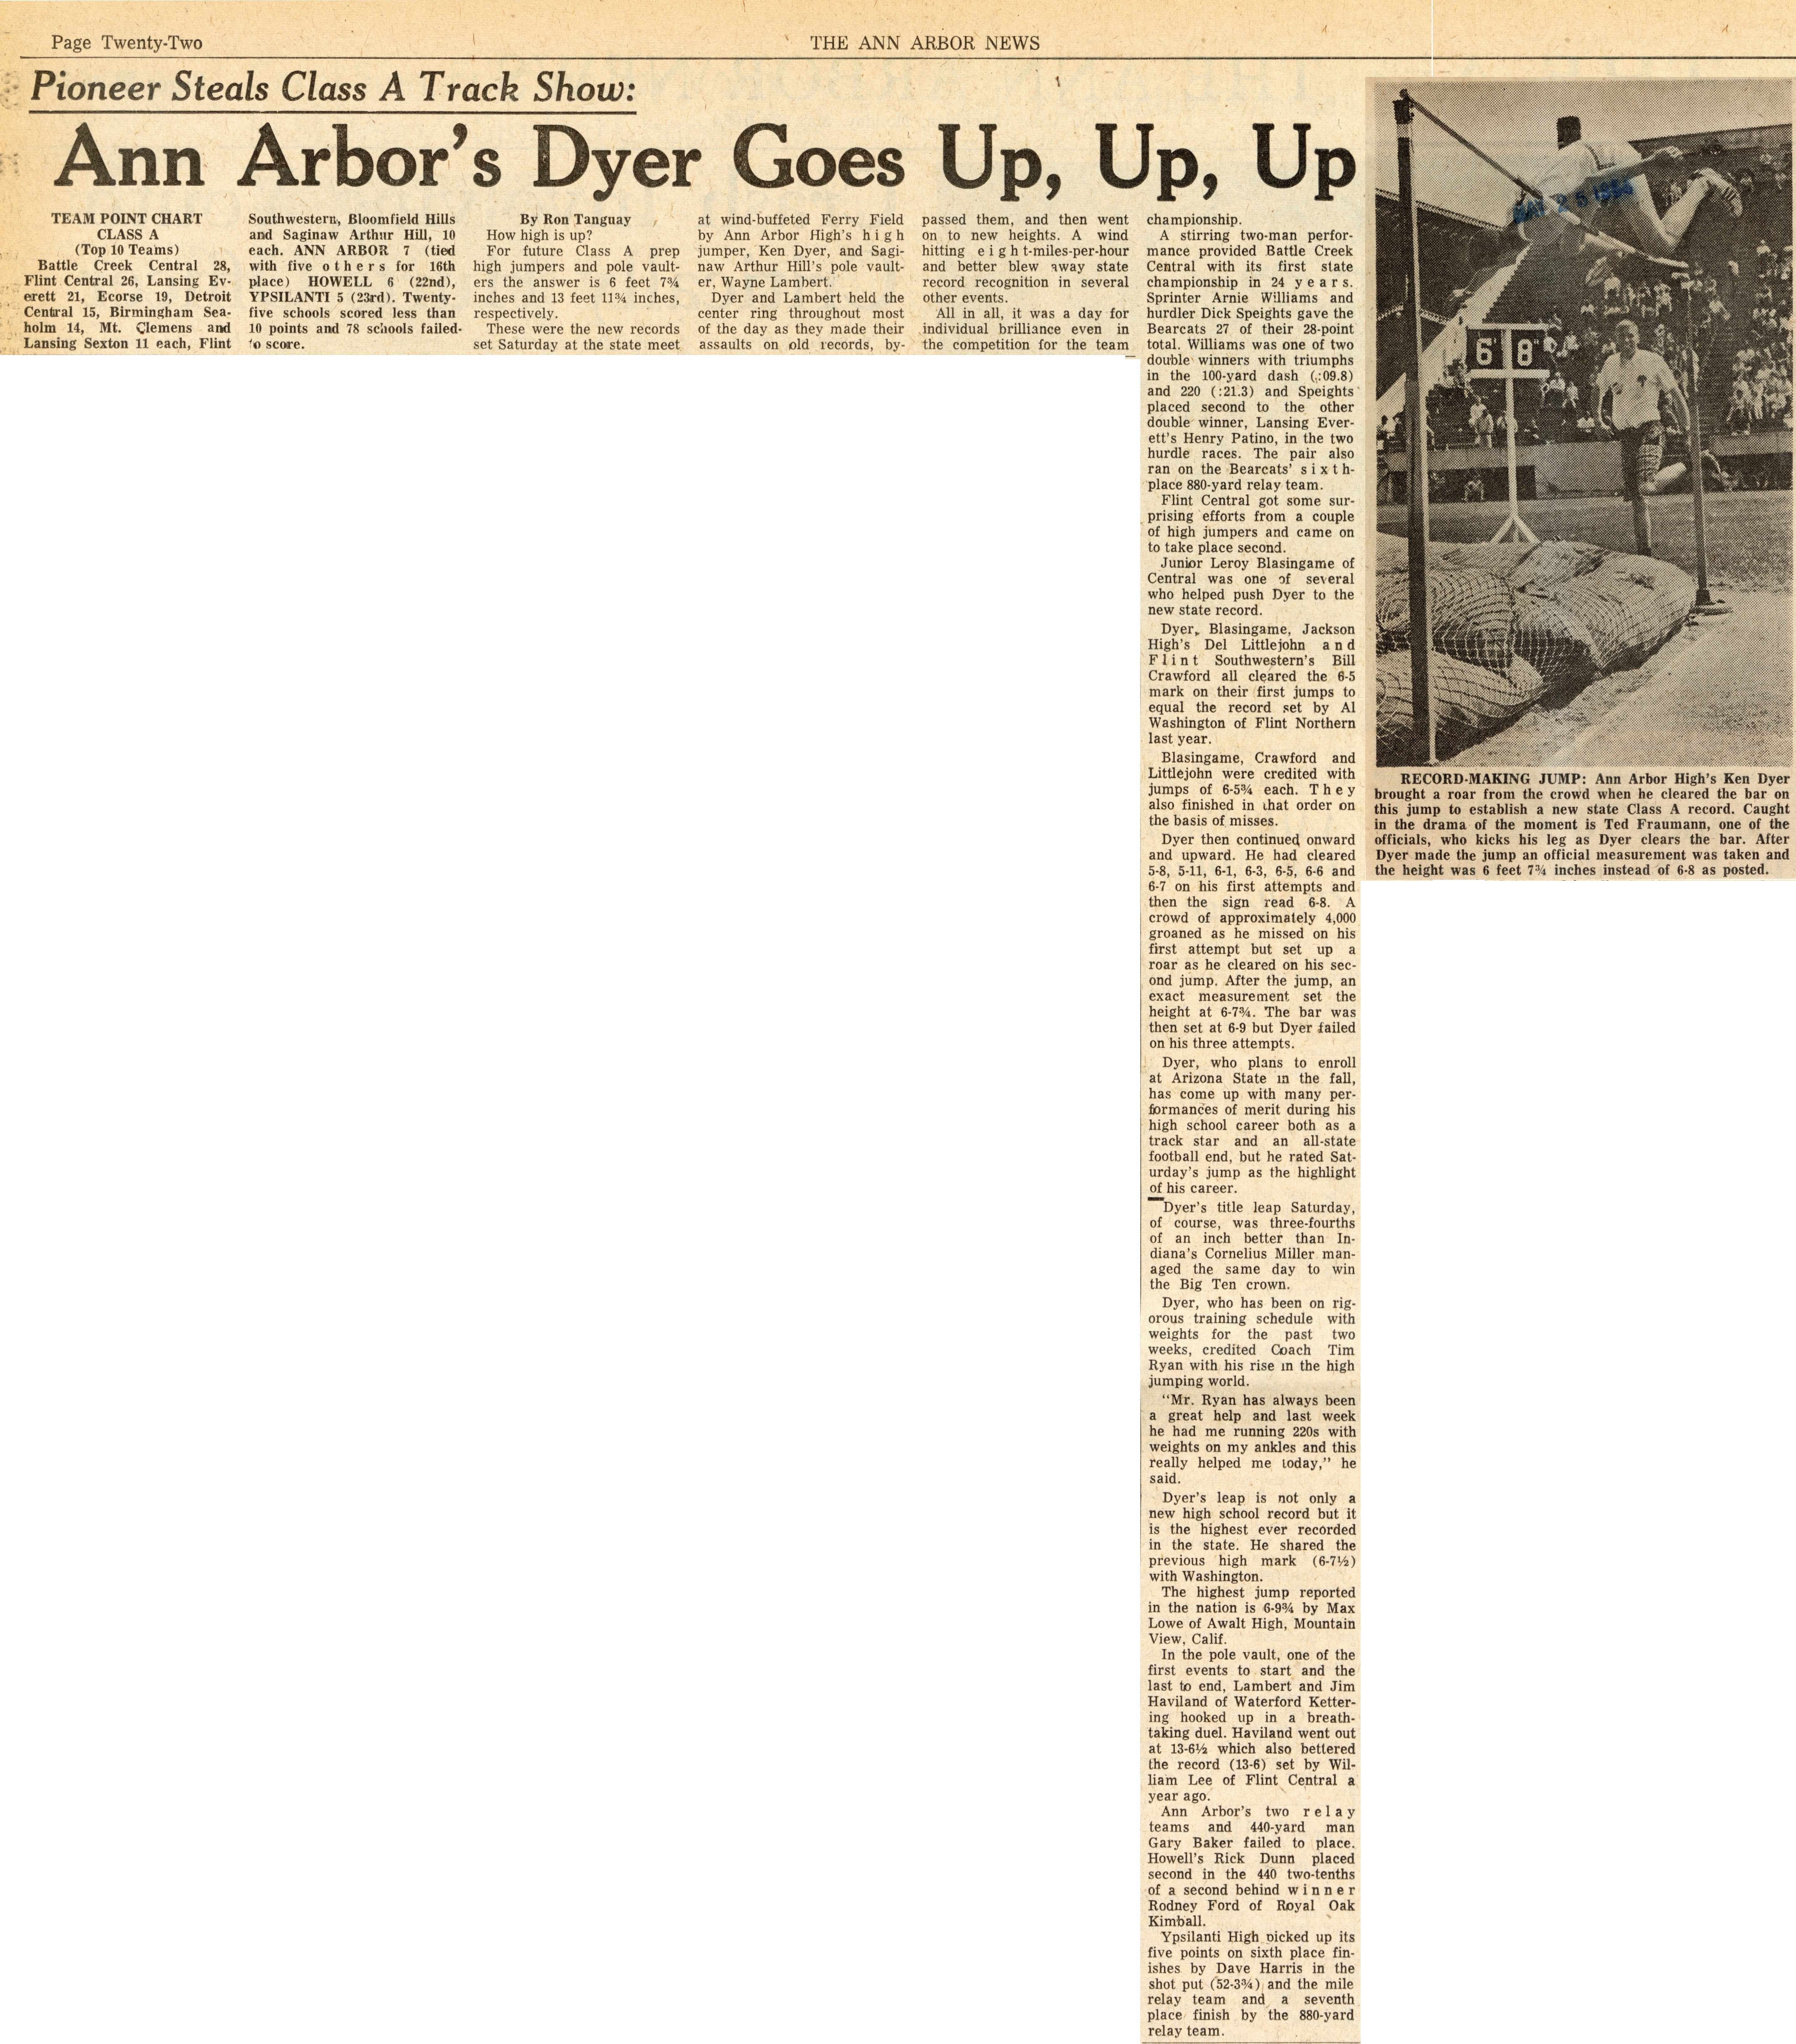 Ann Arbor's Dyer Goes Up, Up, Up image